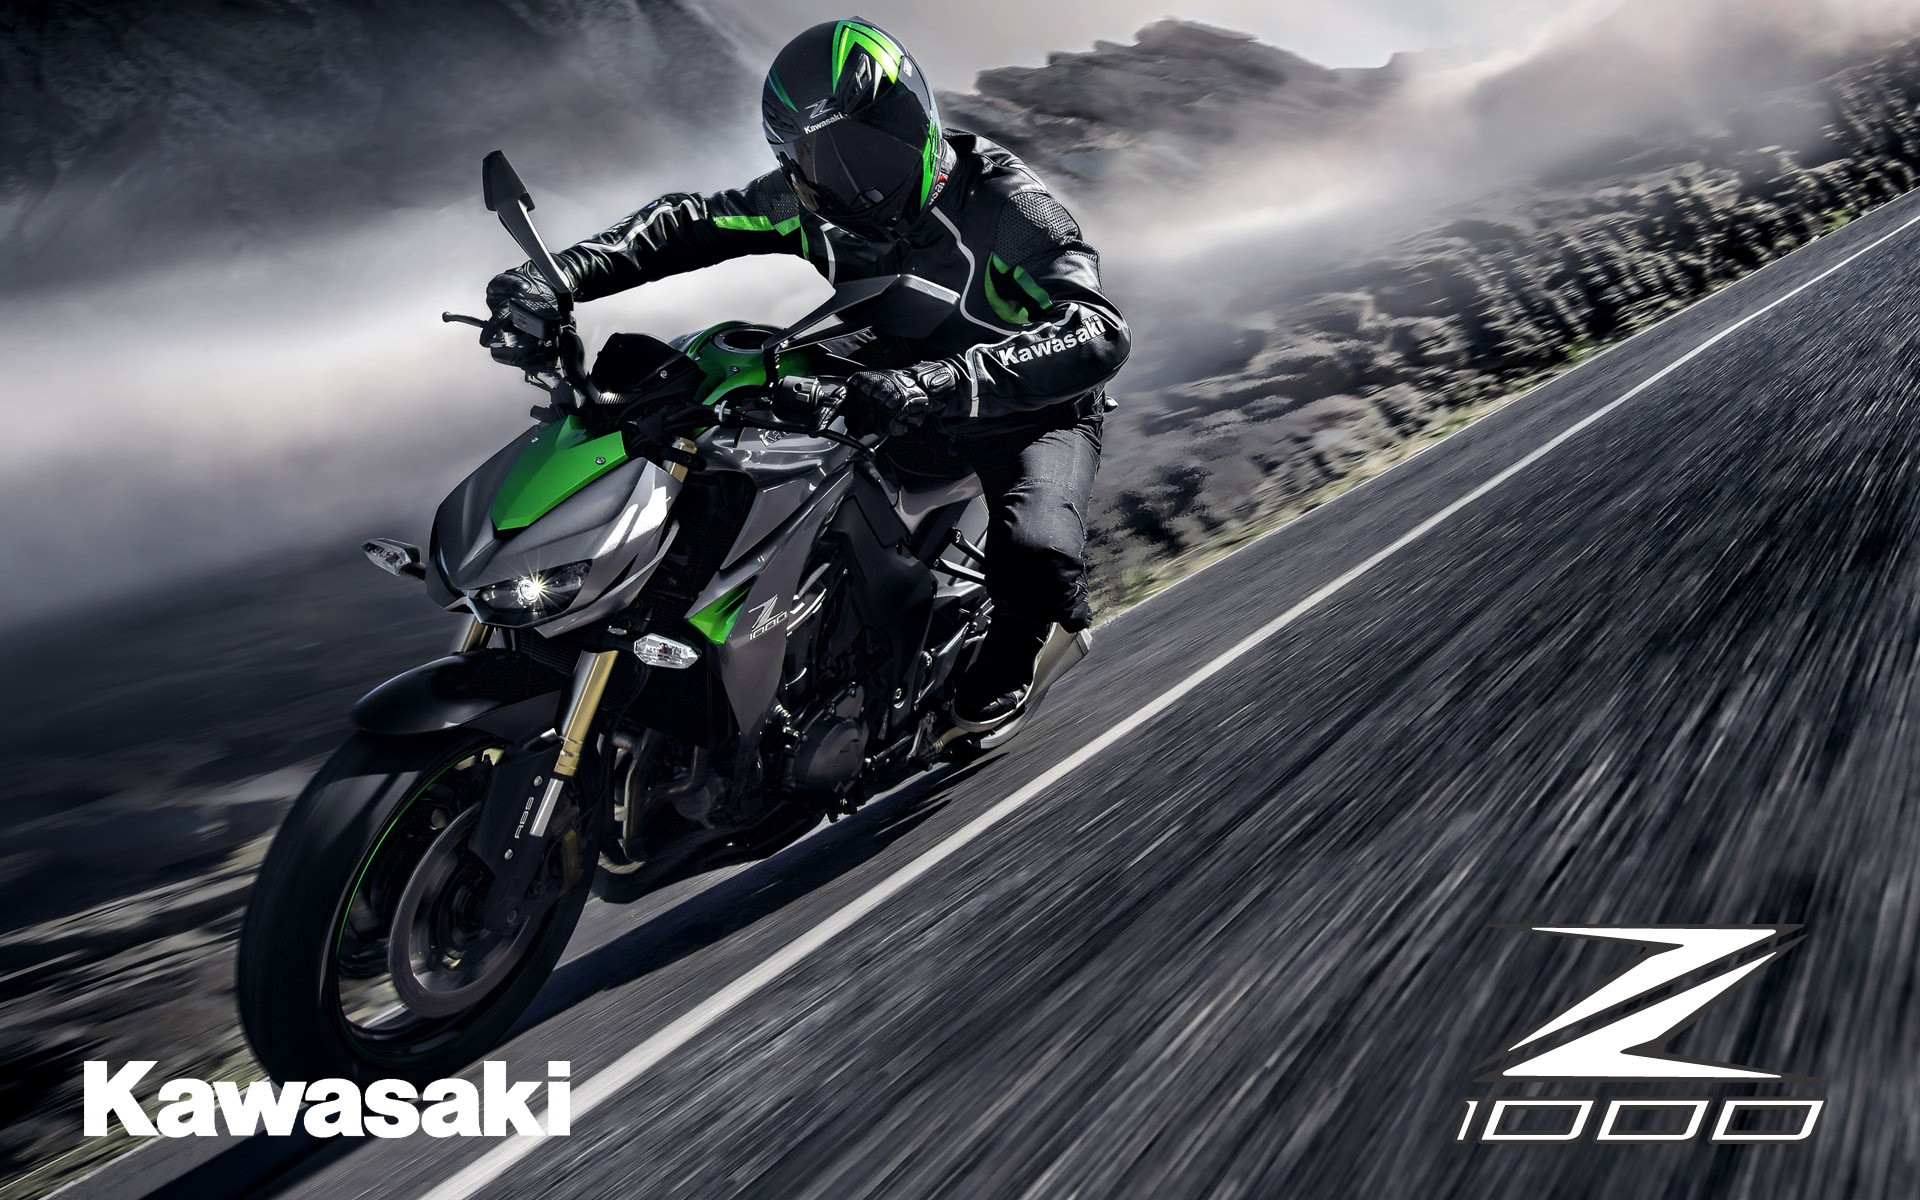 High Resolution Kawasaki Wallpaper